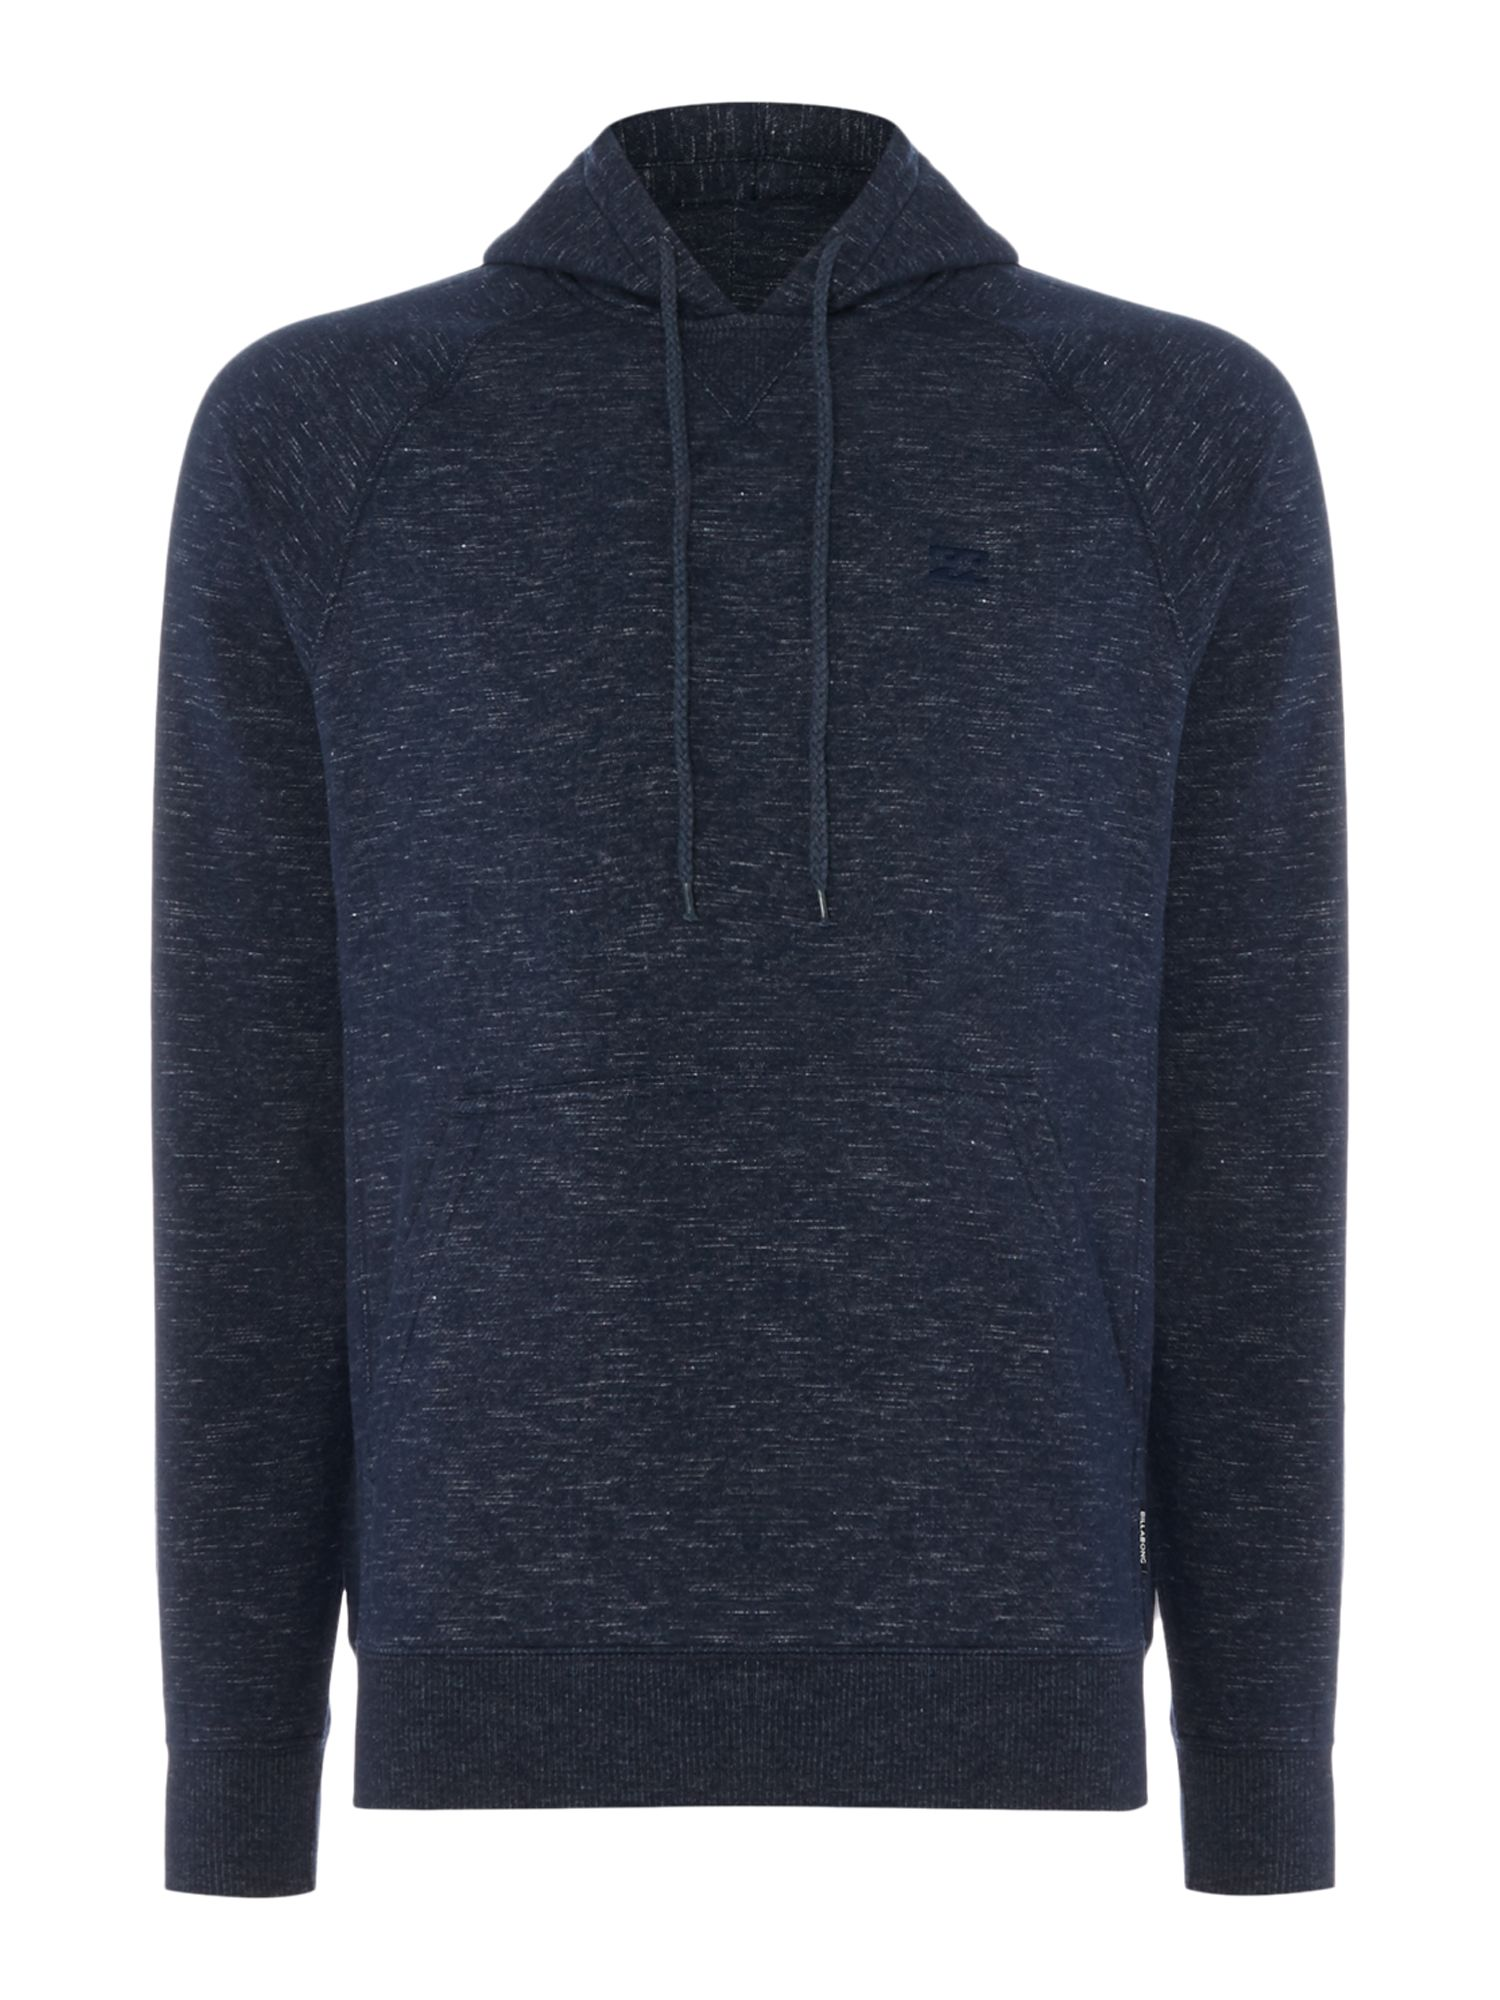 Men's Billabong Brushed Fleece Slub Hooded Pullover, Blue